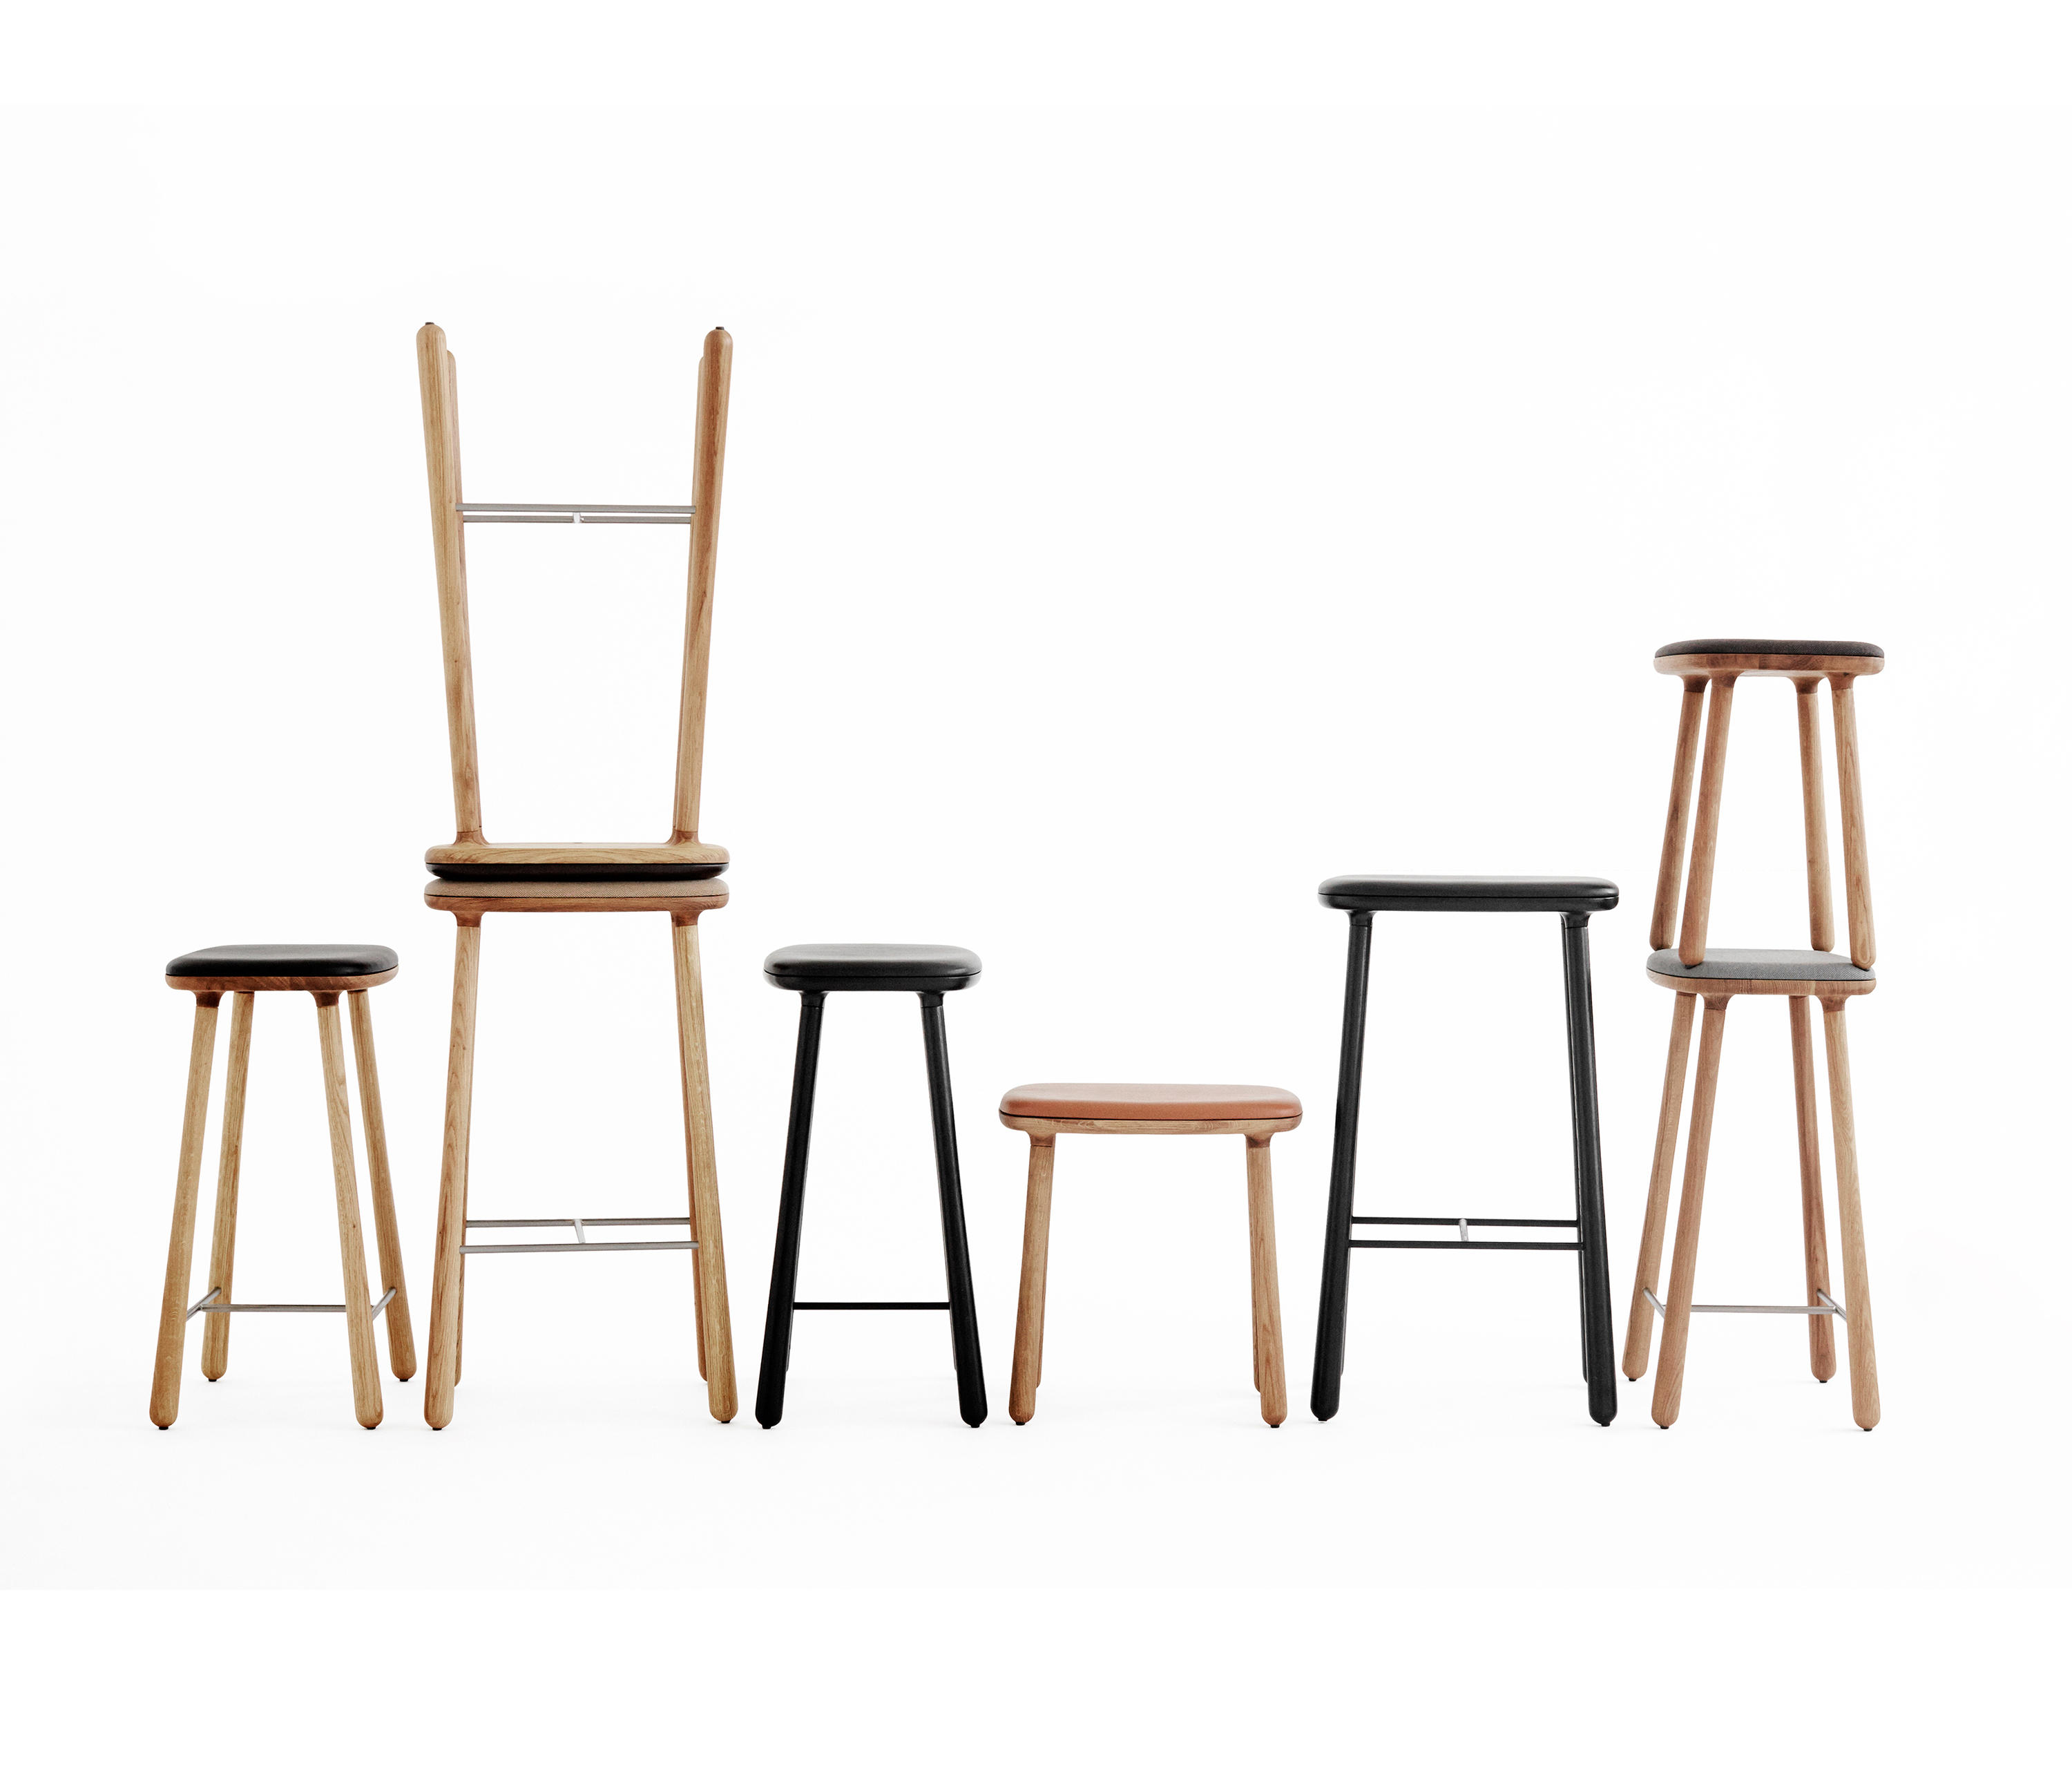 cuba 46 stools from m bel copenhagen architonic. Black Bedroom Furniture Sets. Home Design Ideas